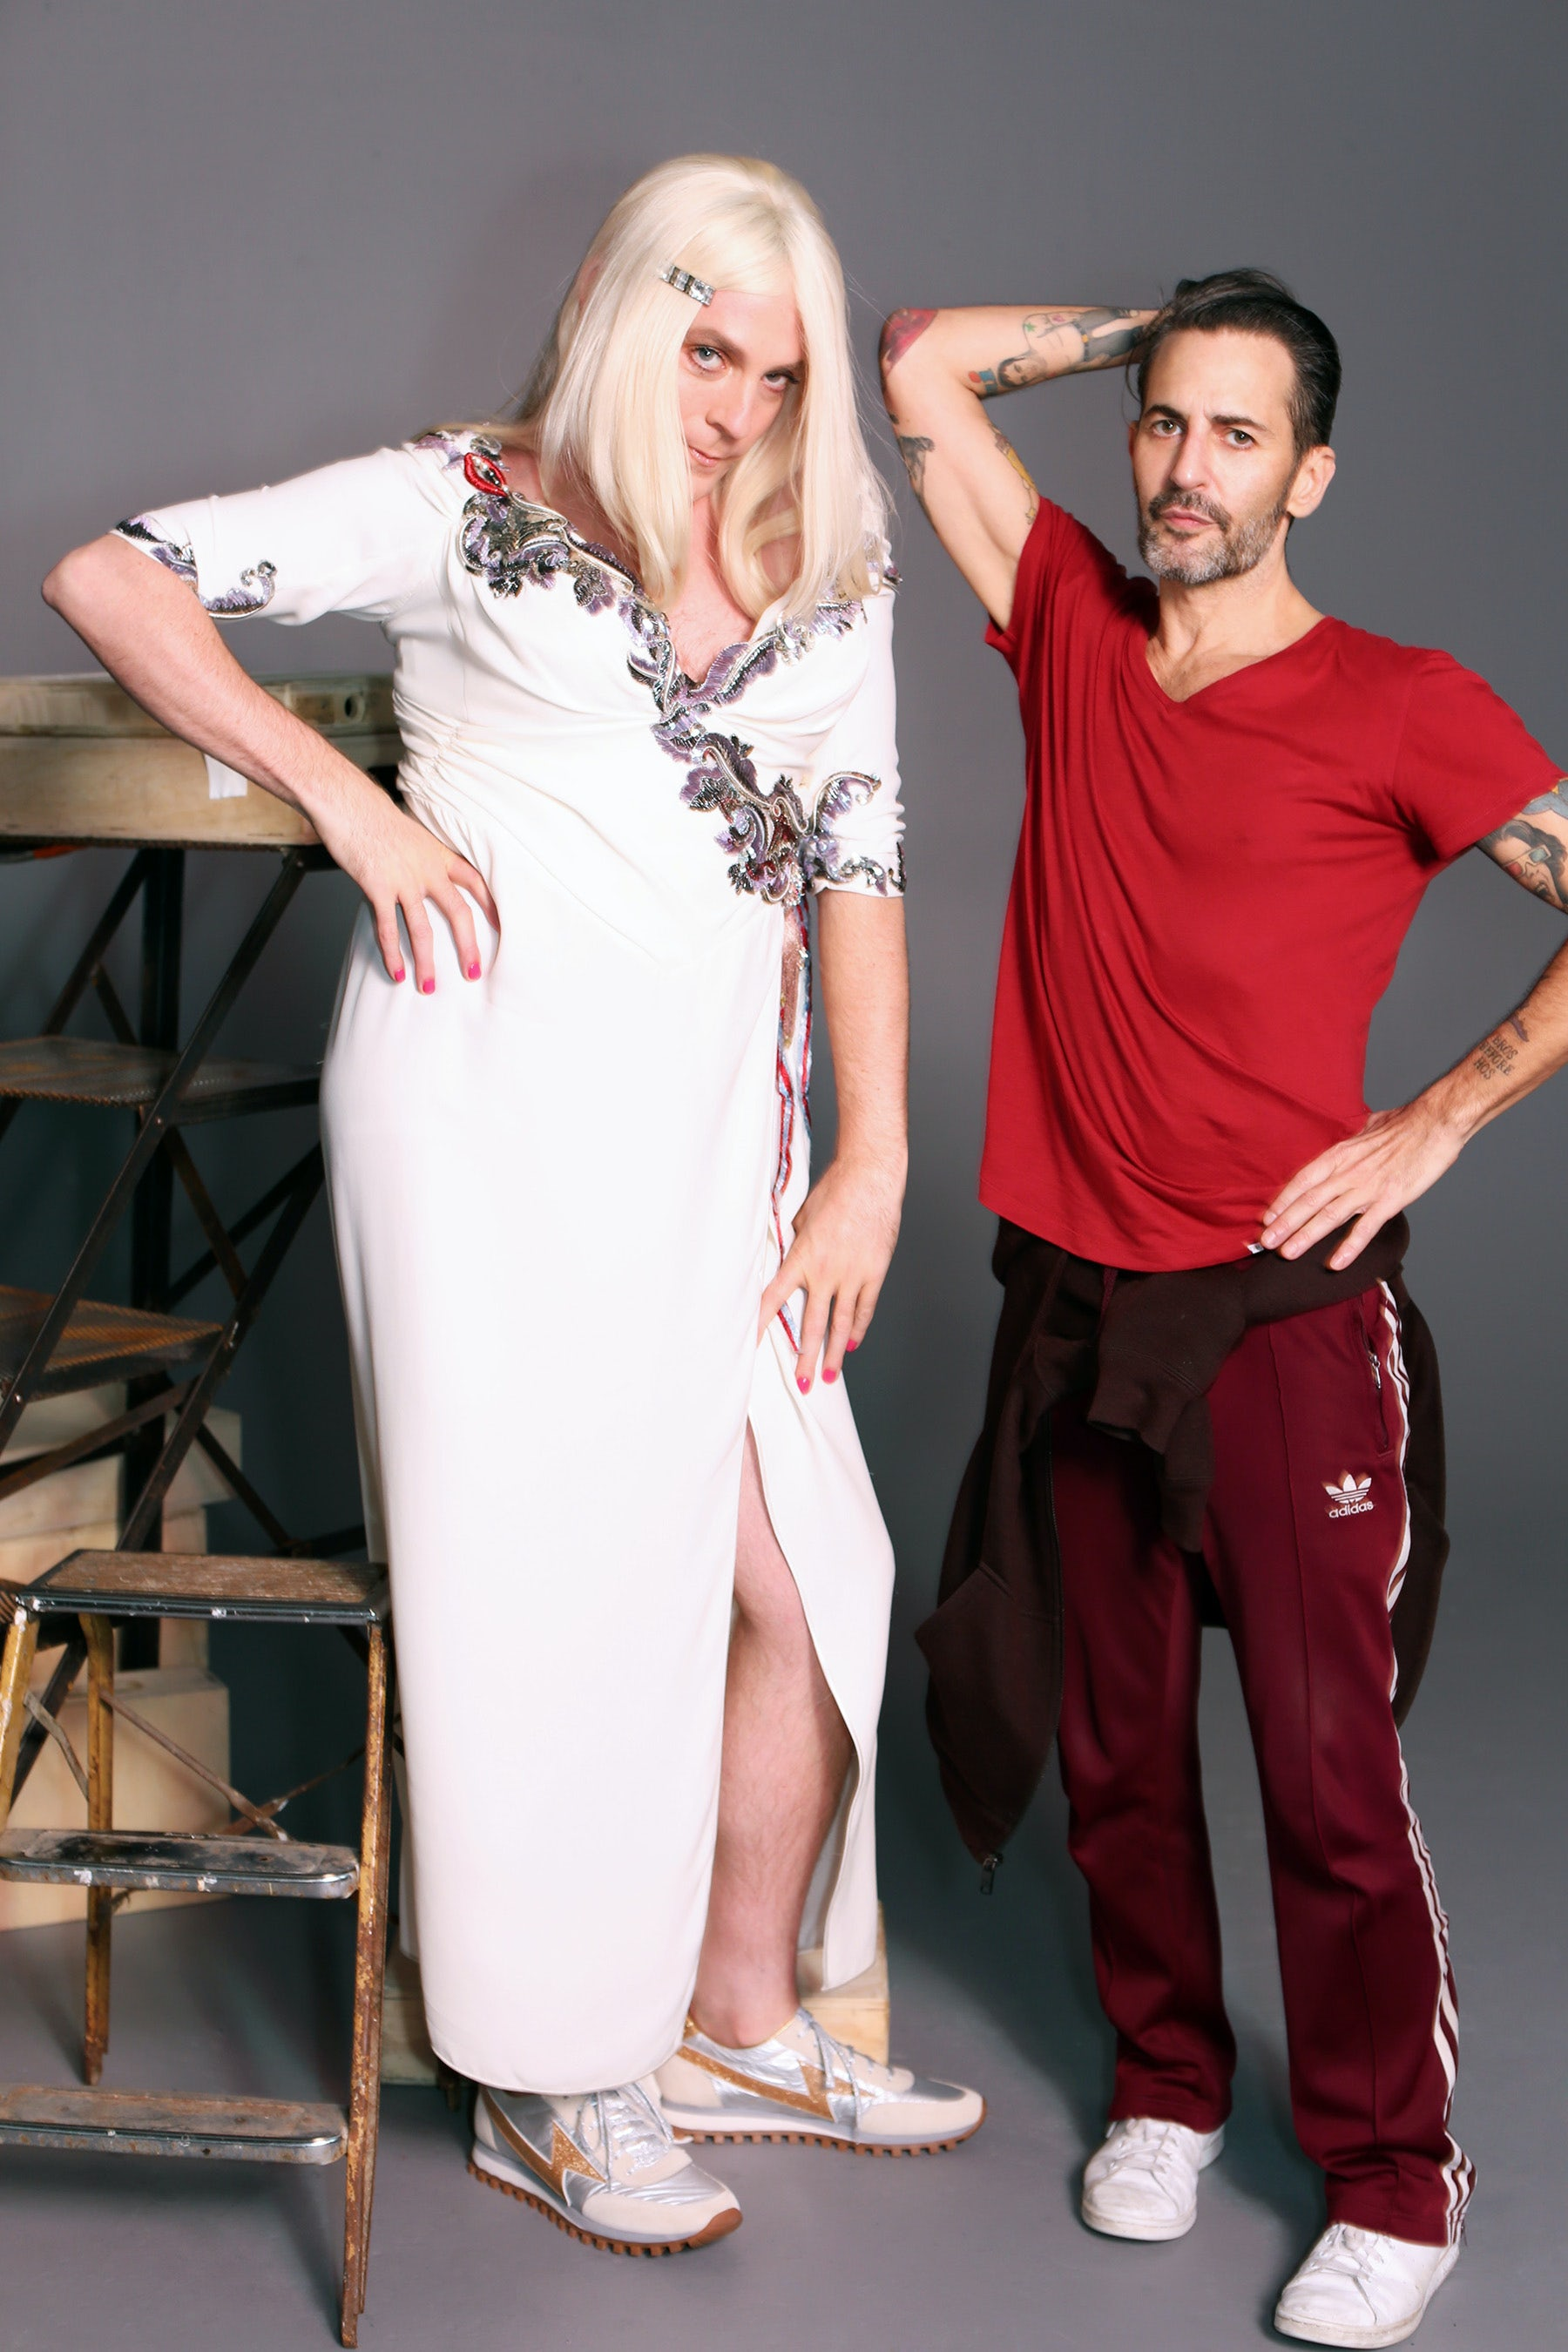 Actor and comedian Drew Droege (left) and Marc Jacobs (right), backstage at the shooting of Marc Jacobs' spring 2016 campaign | Source: Marc Jacobs